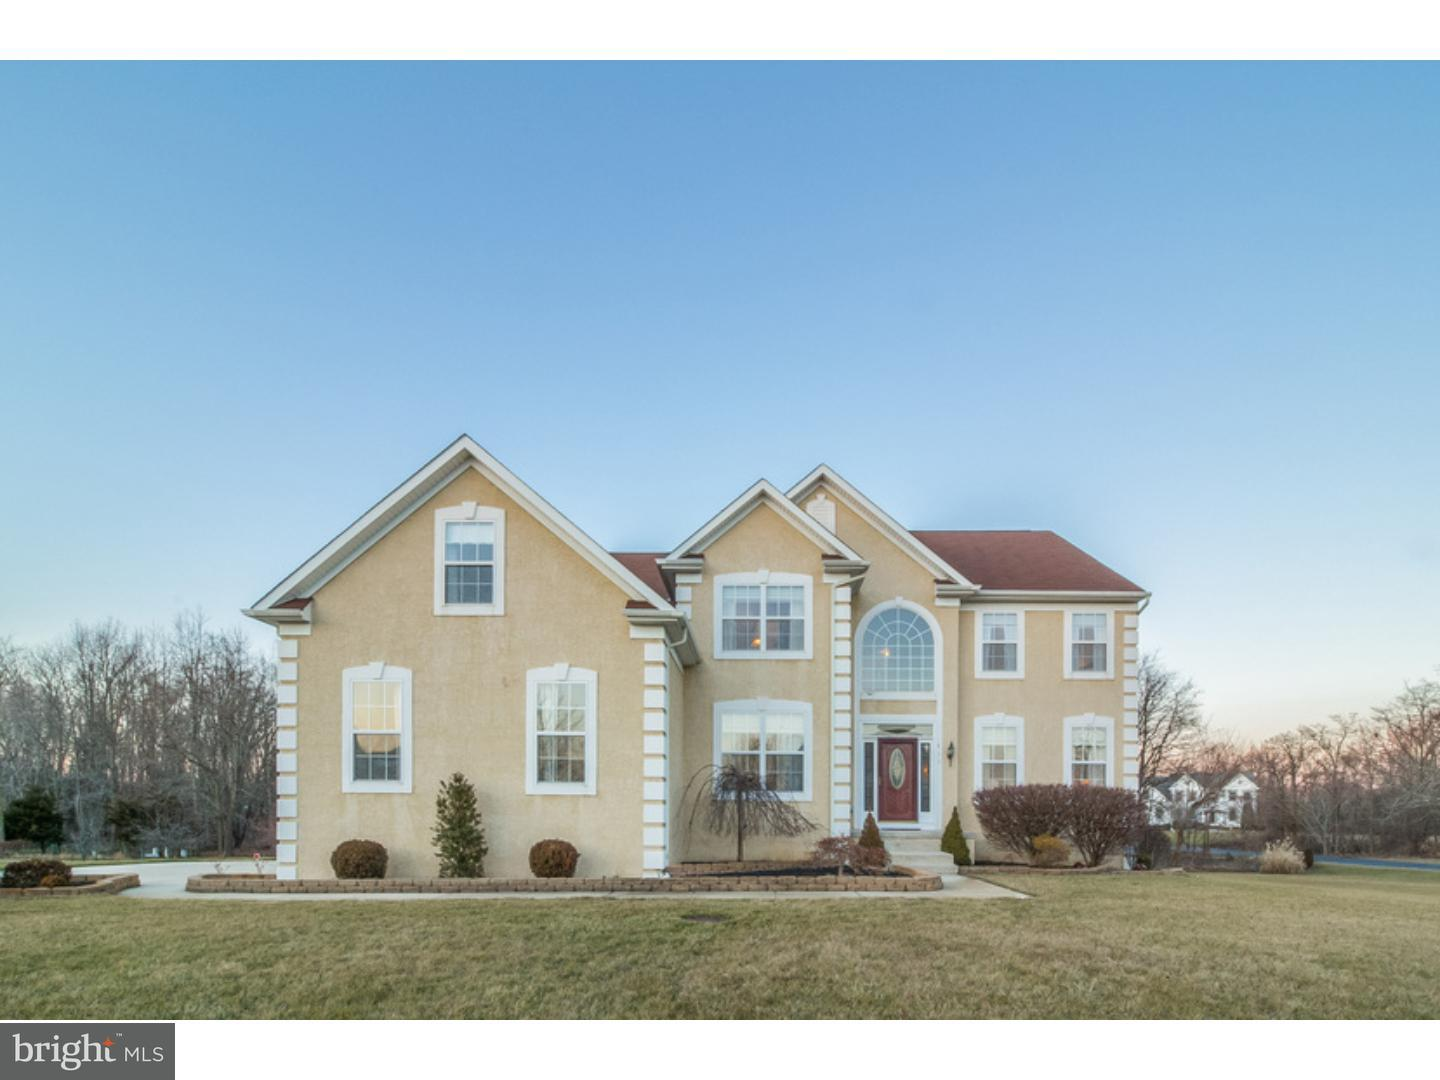 Single Family Home for Sale at 413 MALLARD Lane Monroeville, New Jersey 08343 United States